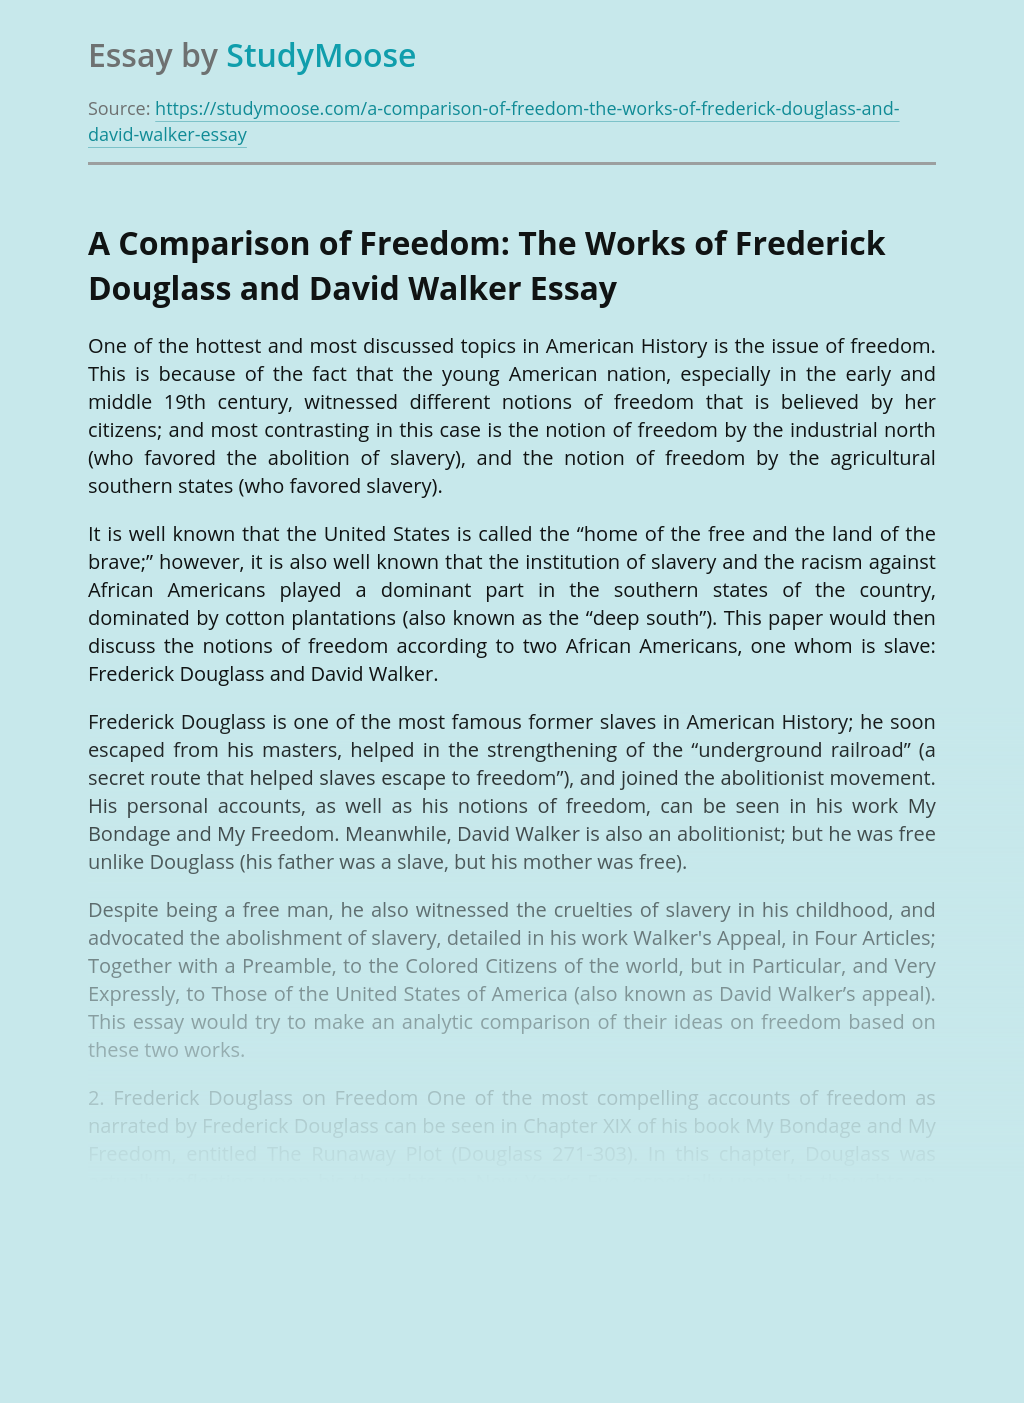 A Comparison of Freedom: The Works of Frederick Douglass and David Walker